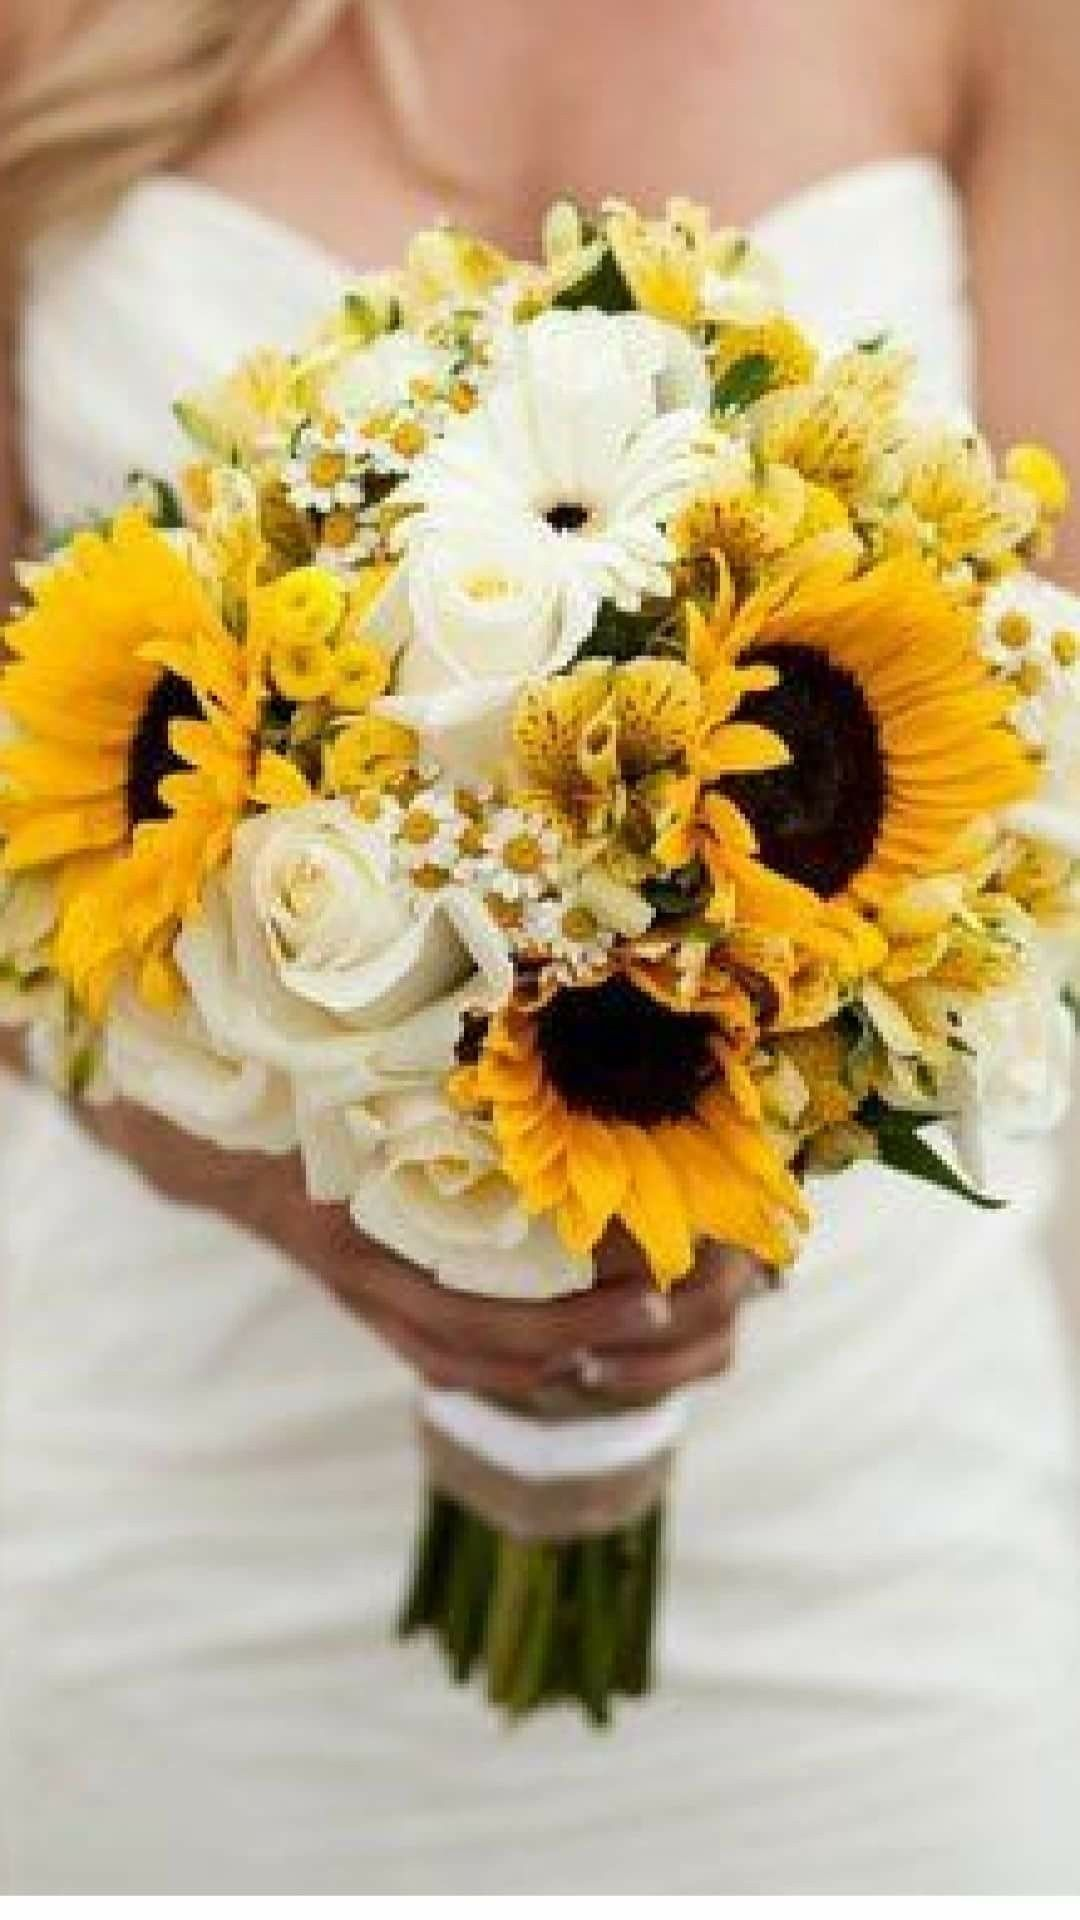 A Bride Holds A Pretty Wedding Bouquet Consisting Of Sunflowers